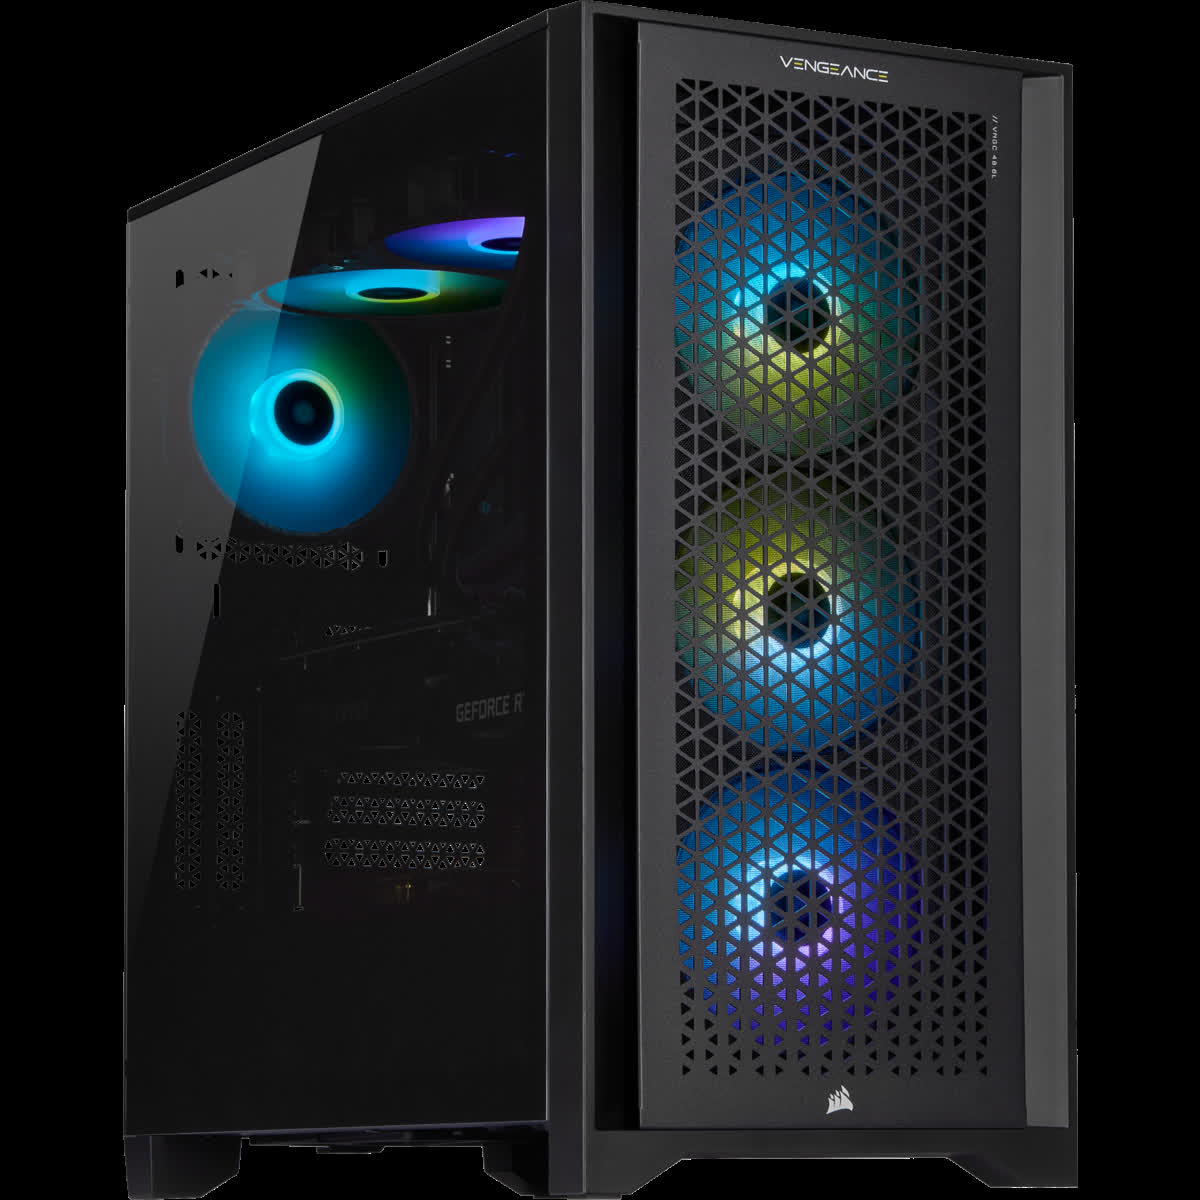 Want an RTX 3080 or RTX 3090? You could always buy Corsair's new pre-built PC